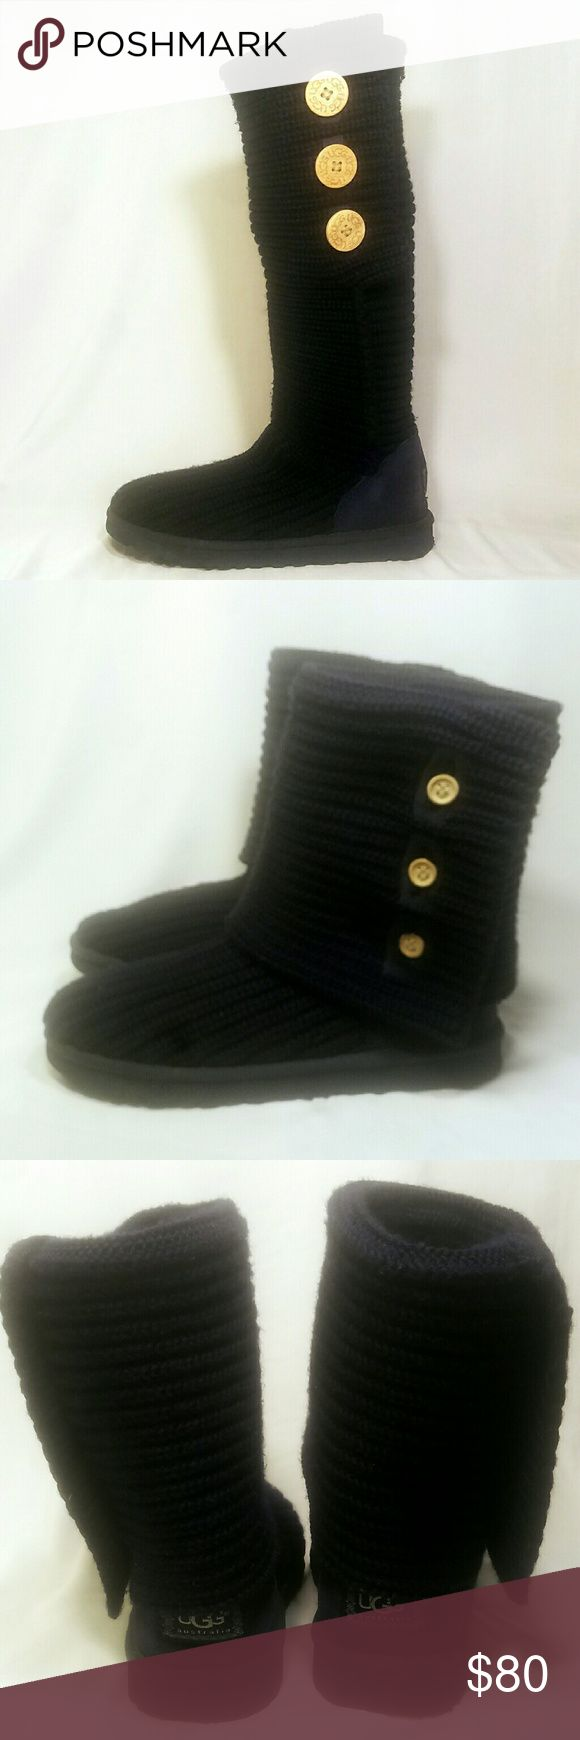 UGG Cardy Knit Boots Great condition.  Almost new. Wool insole could be replaced but doesn't need to be. That is your preference. UGG Shoes Winter & Rain Boots